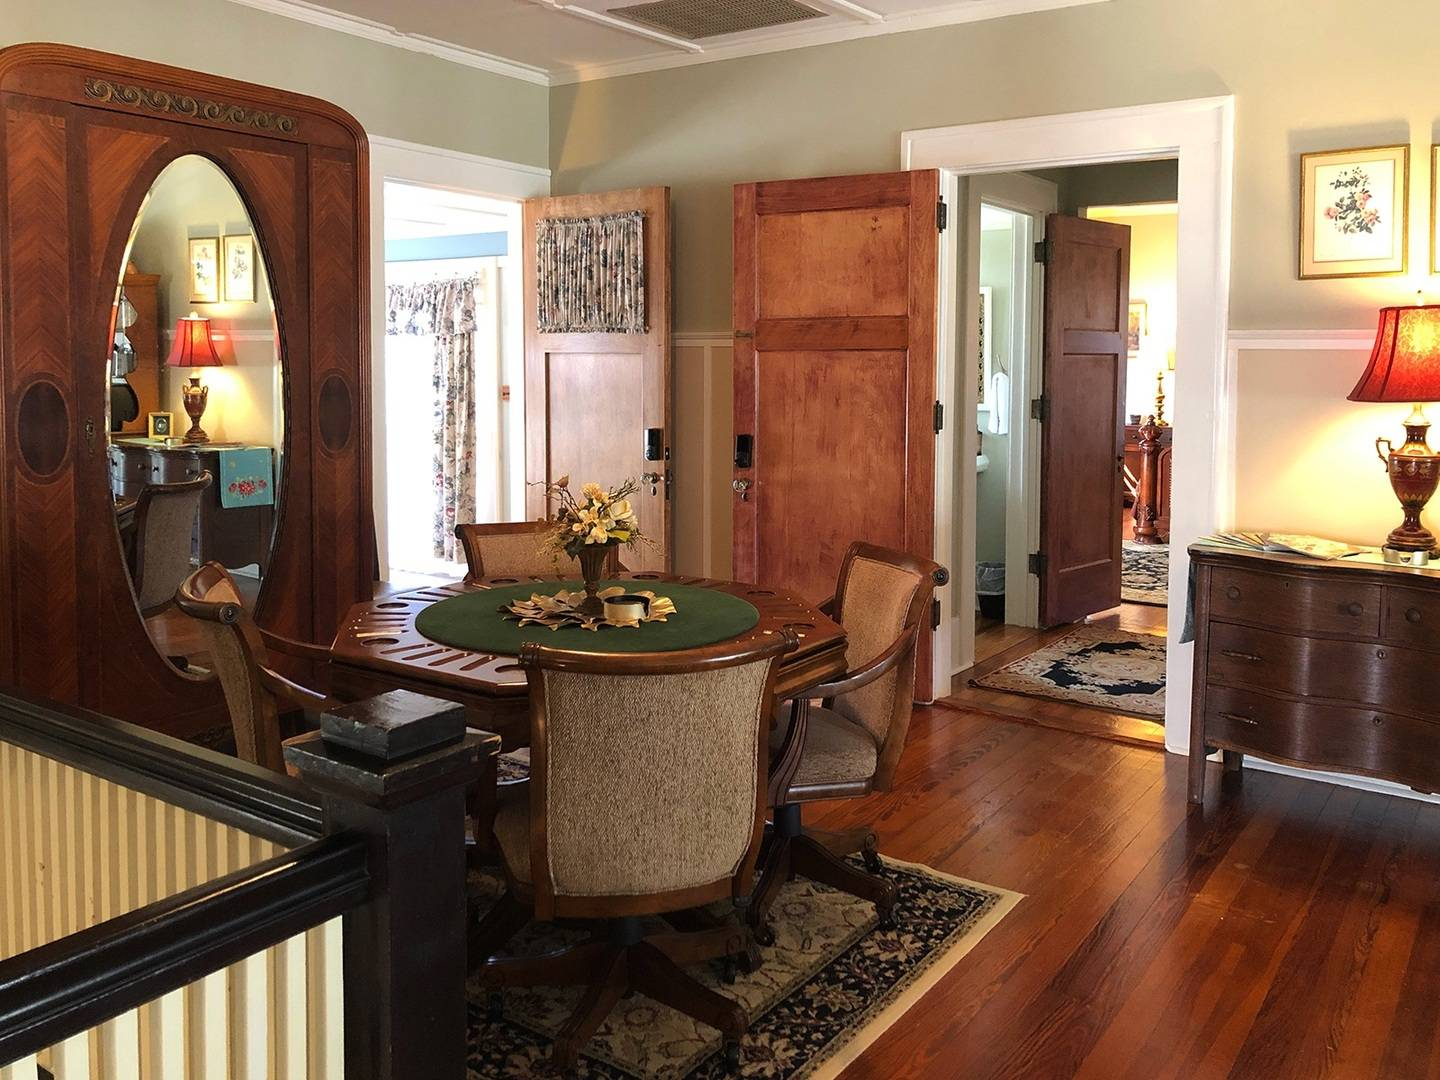 Georgetown Bed and Breakfast